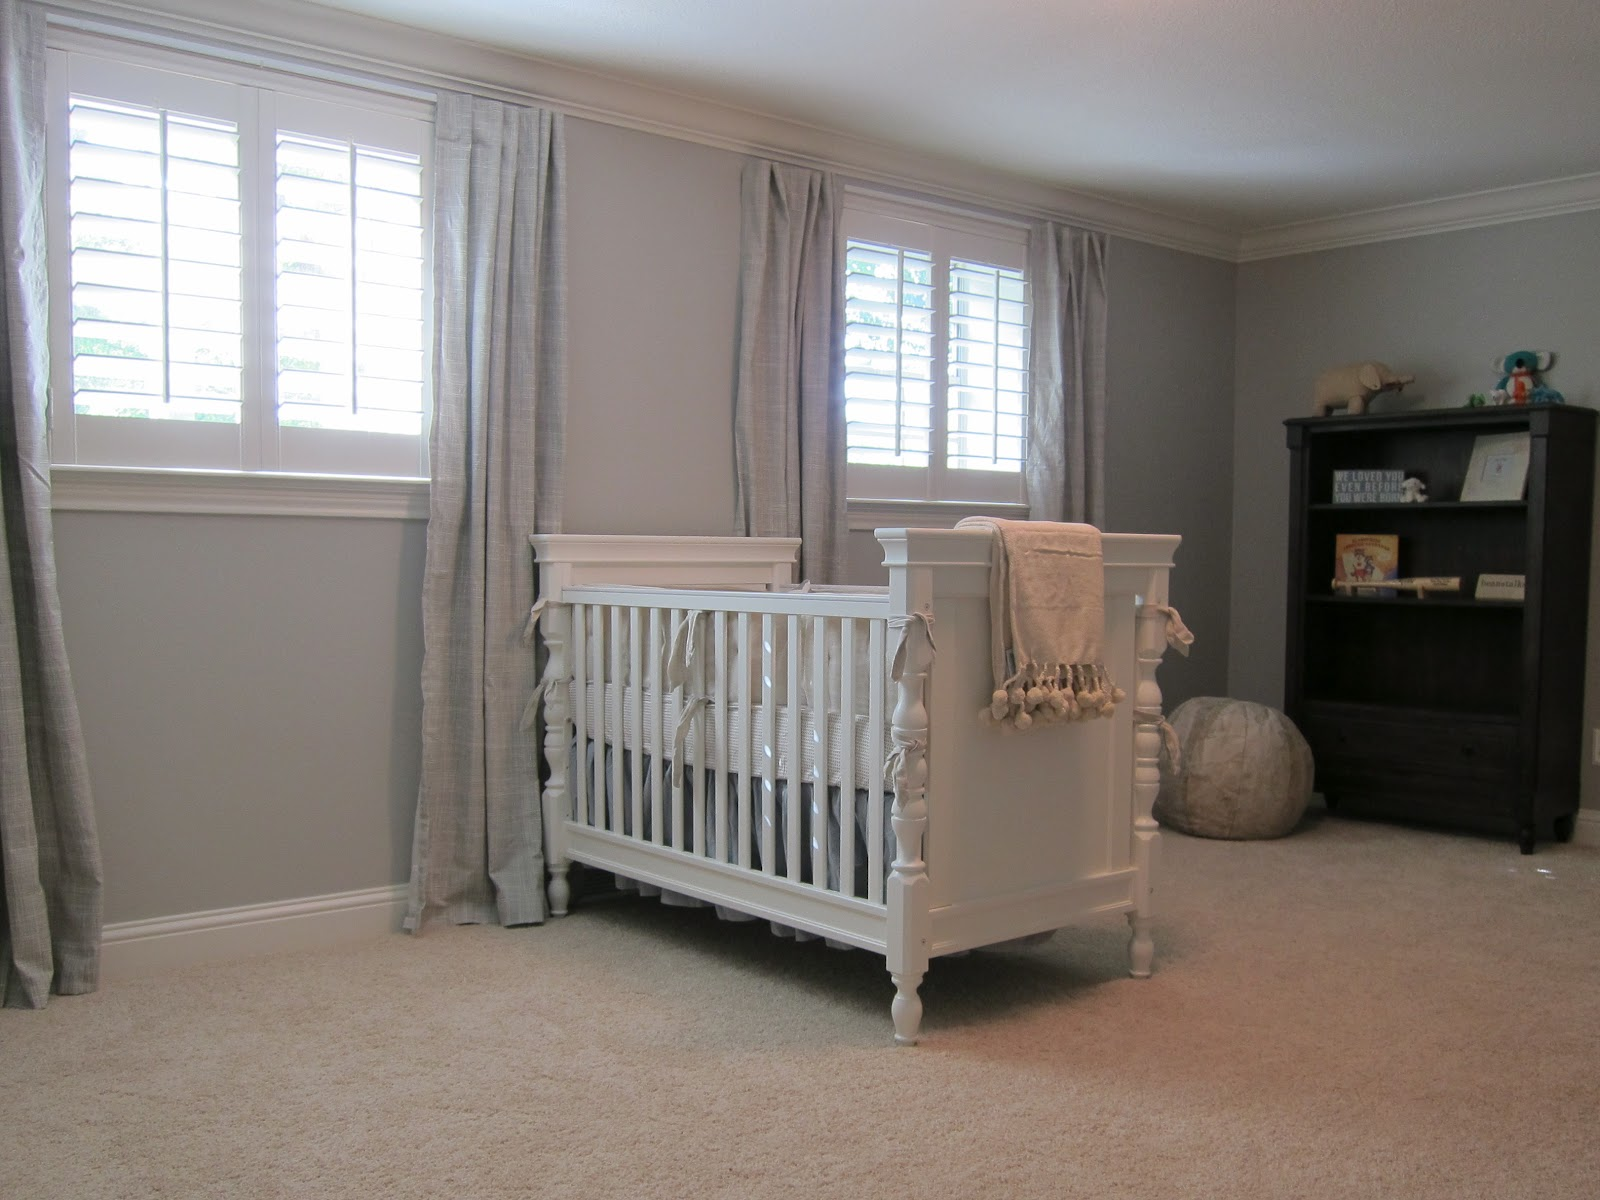 Restoration Hardware Baby Outlet | Restoration Hardware Cribs | Consumer Reports Baby Cribs